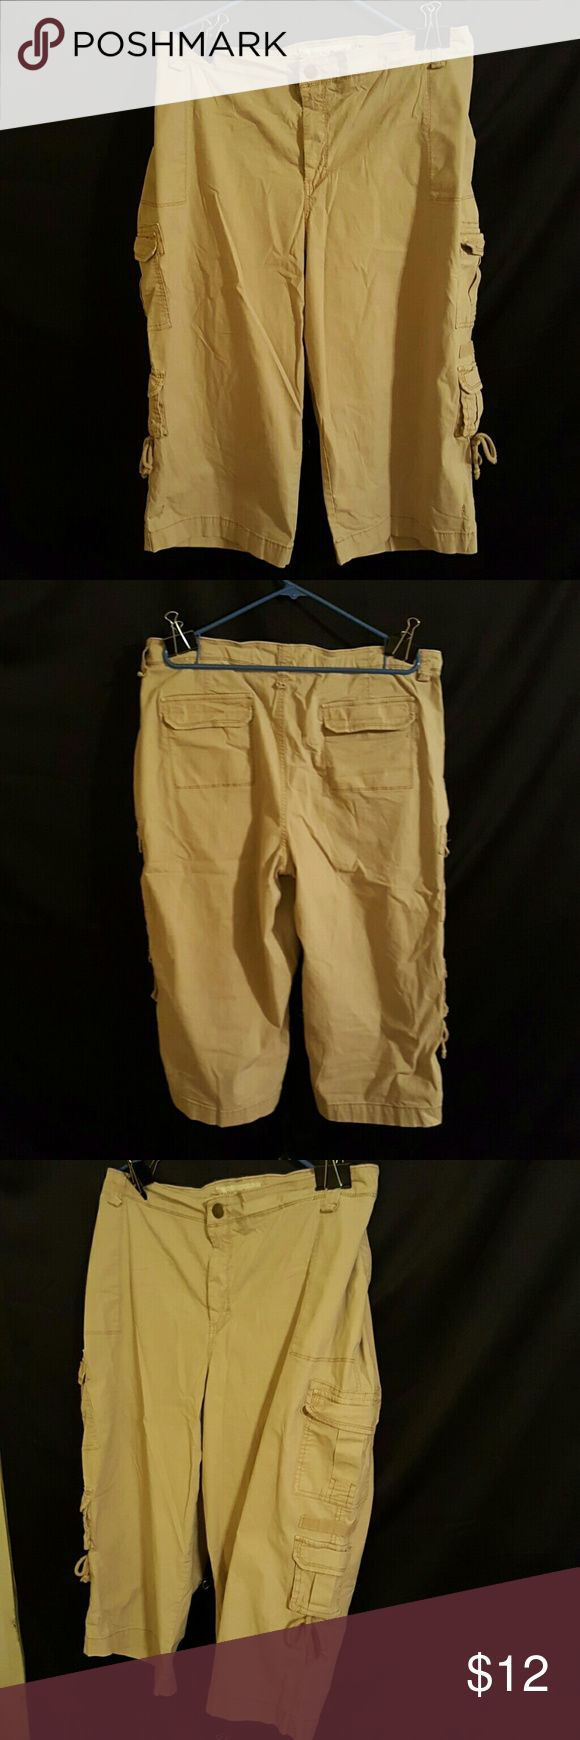 Cargo Pocket Kaki Capri's- Fashion Bug Tan Cargo Pocket Kaki Capri's. Snap Button Front with Zipper. Cargo Pants Design with 8 Useable Functioning Pockets. 98% Cotton 2% Polyester. Used Condition with No stains, holes, rips, or any type of damage. Plus Size 28W Fashion Bug Pants Capris